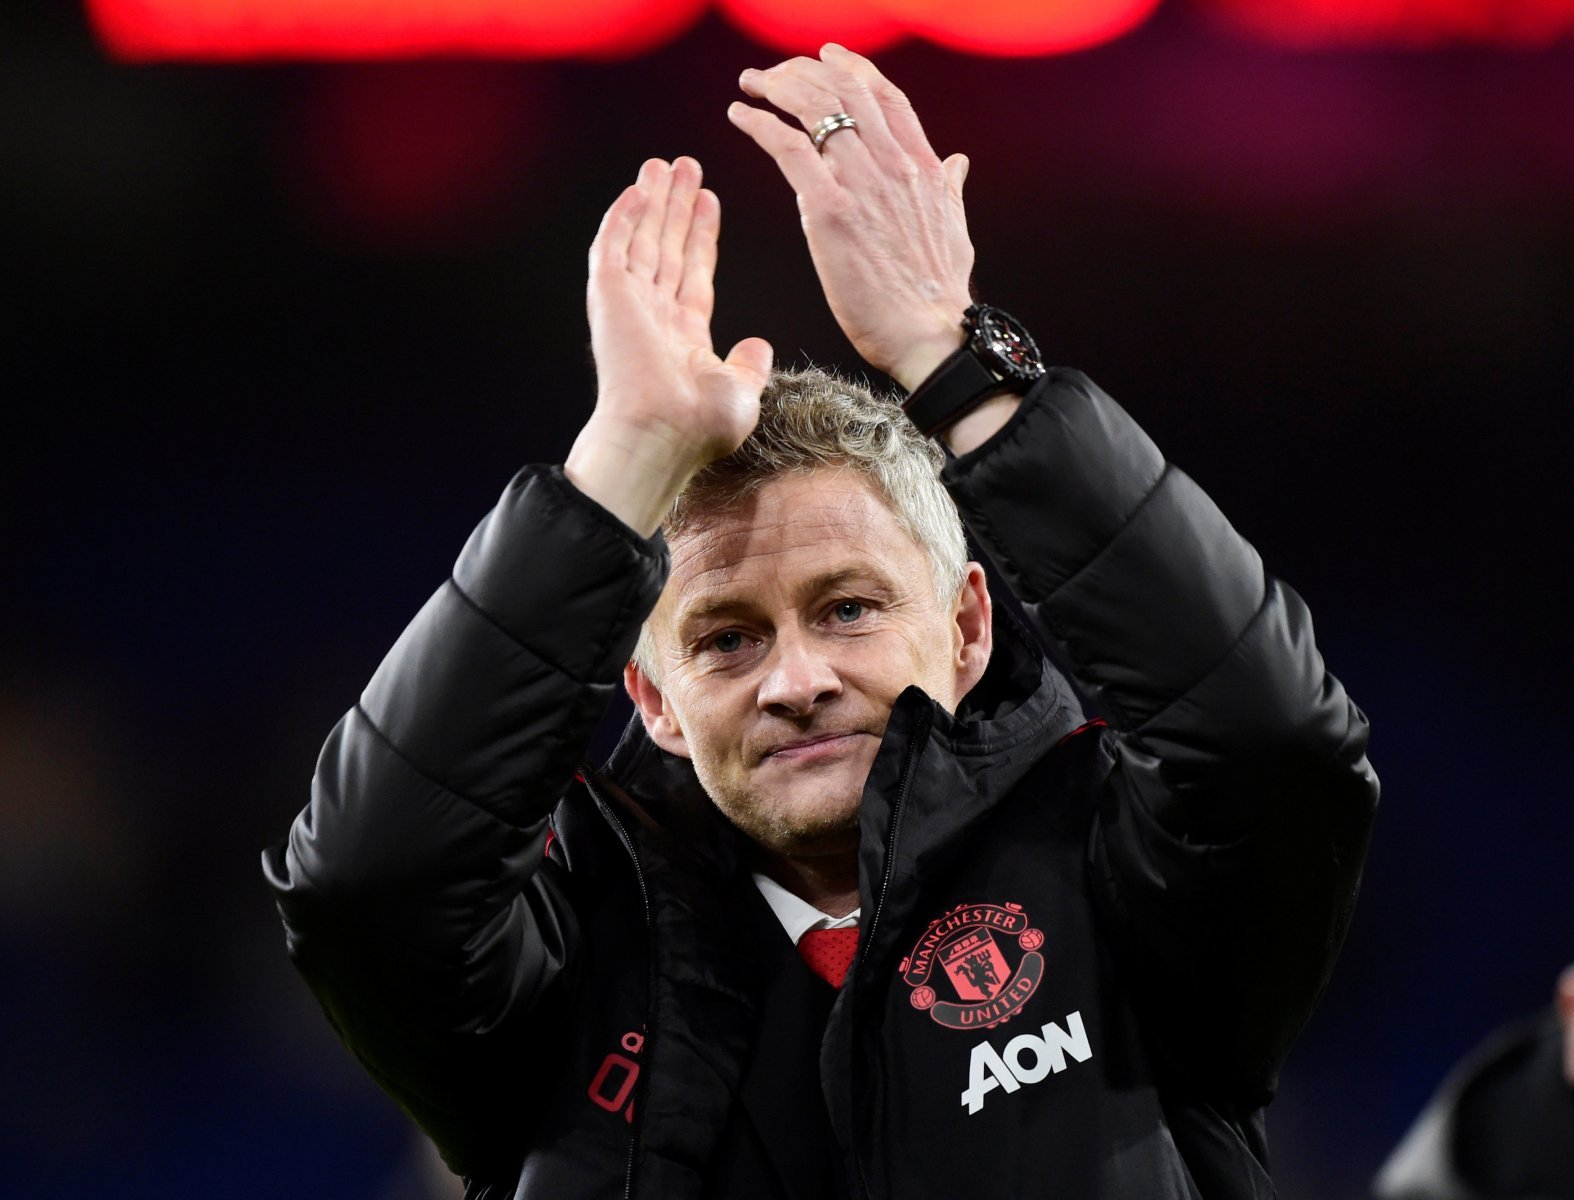 Man Utd fans have found a new reason to love Solskjaer